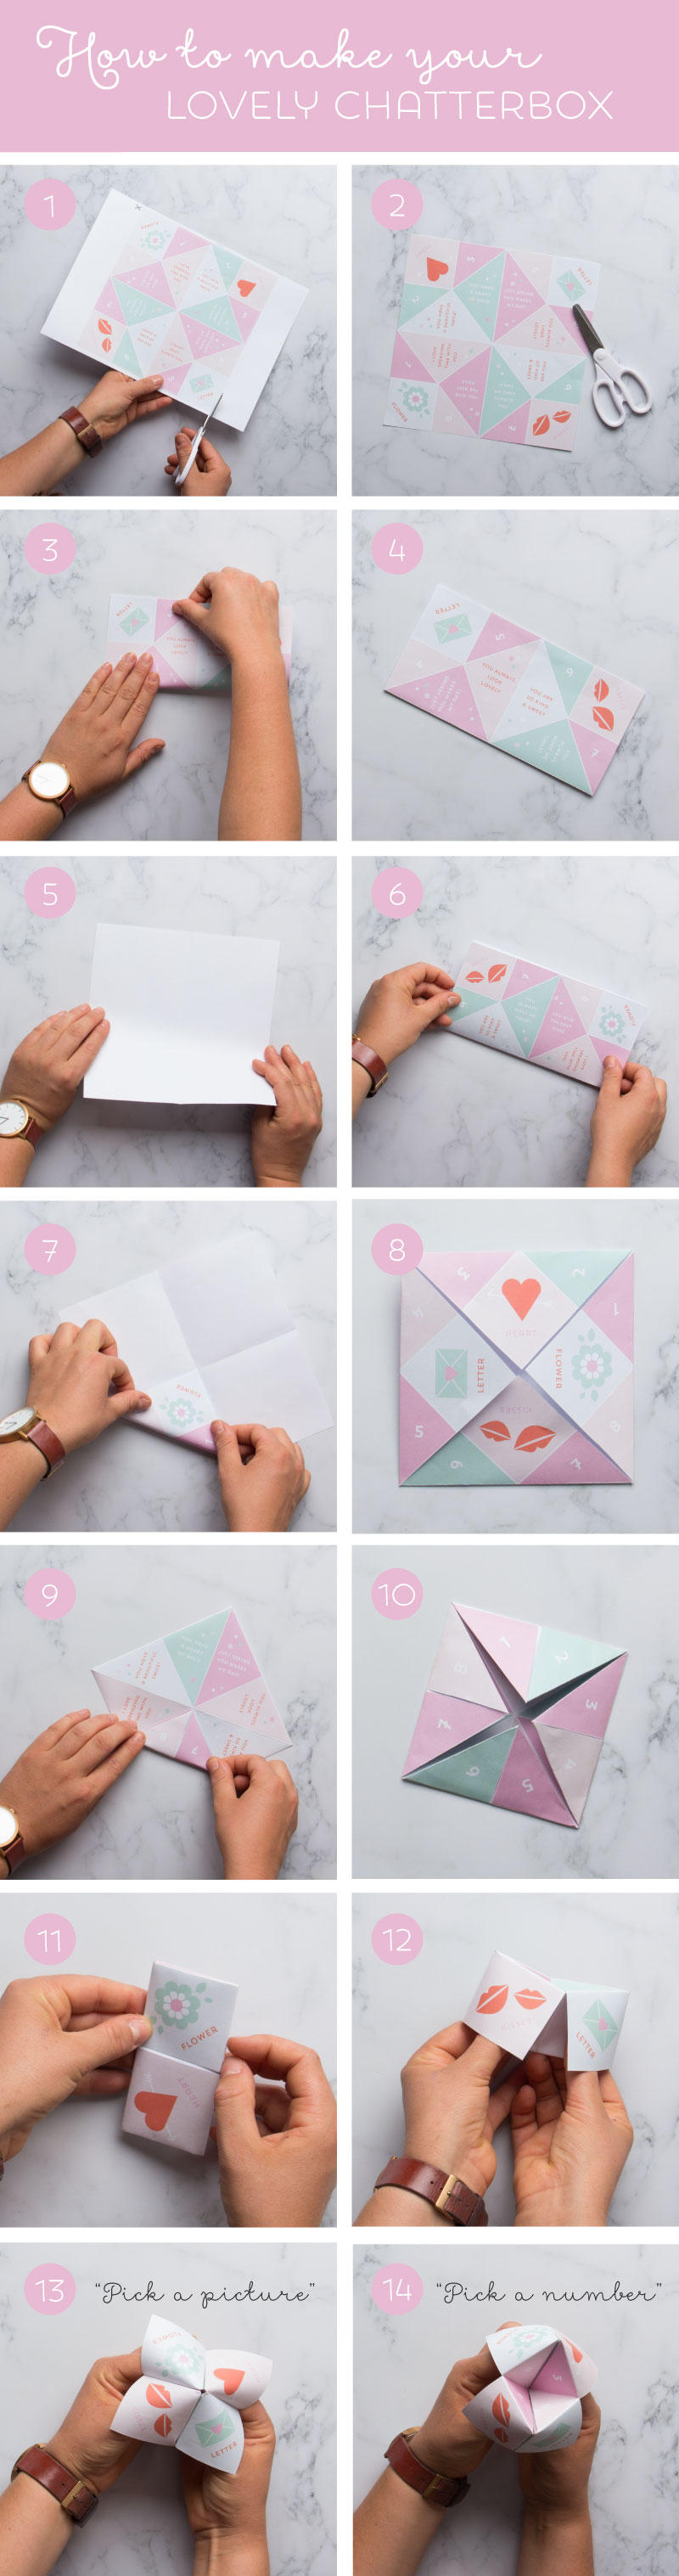 Valentines chatterbox printable in the playroom how to make a chatterbox or paper fortune teller with free valentines themed printable chatterbox pronofoot35fo Images